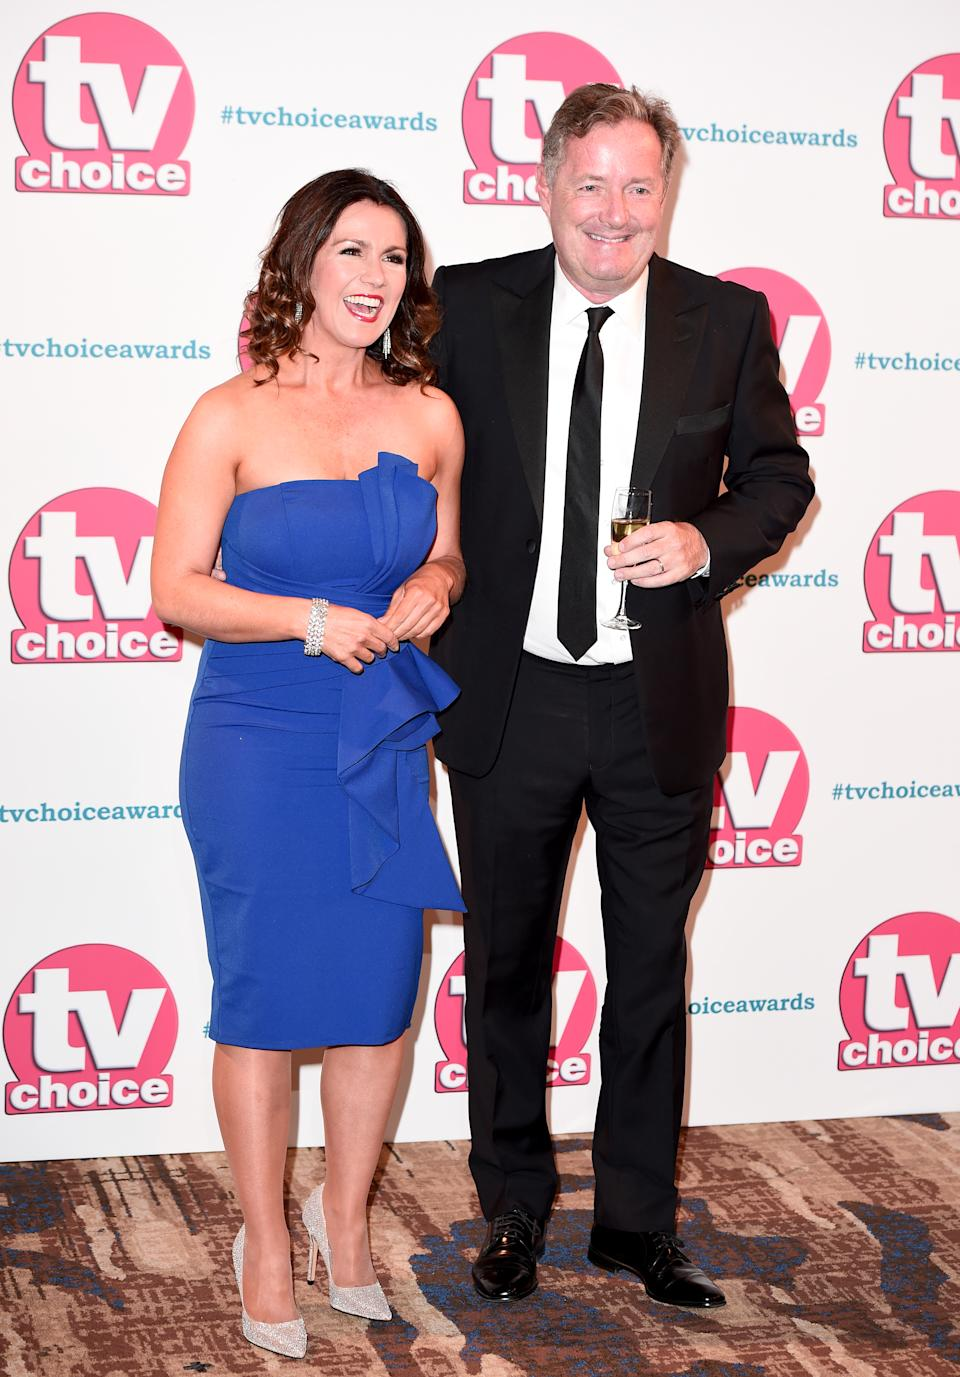 Susanna Reid and Piers Morgan attend The TV Choice Awards 2019 at Hilton Park Lane on September 09, 2019 in London, England. (Photo by Eamonn M. McCormack/Getty Images)